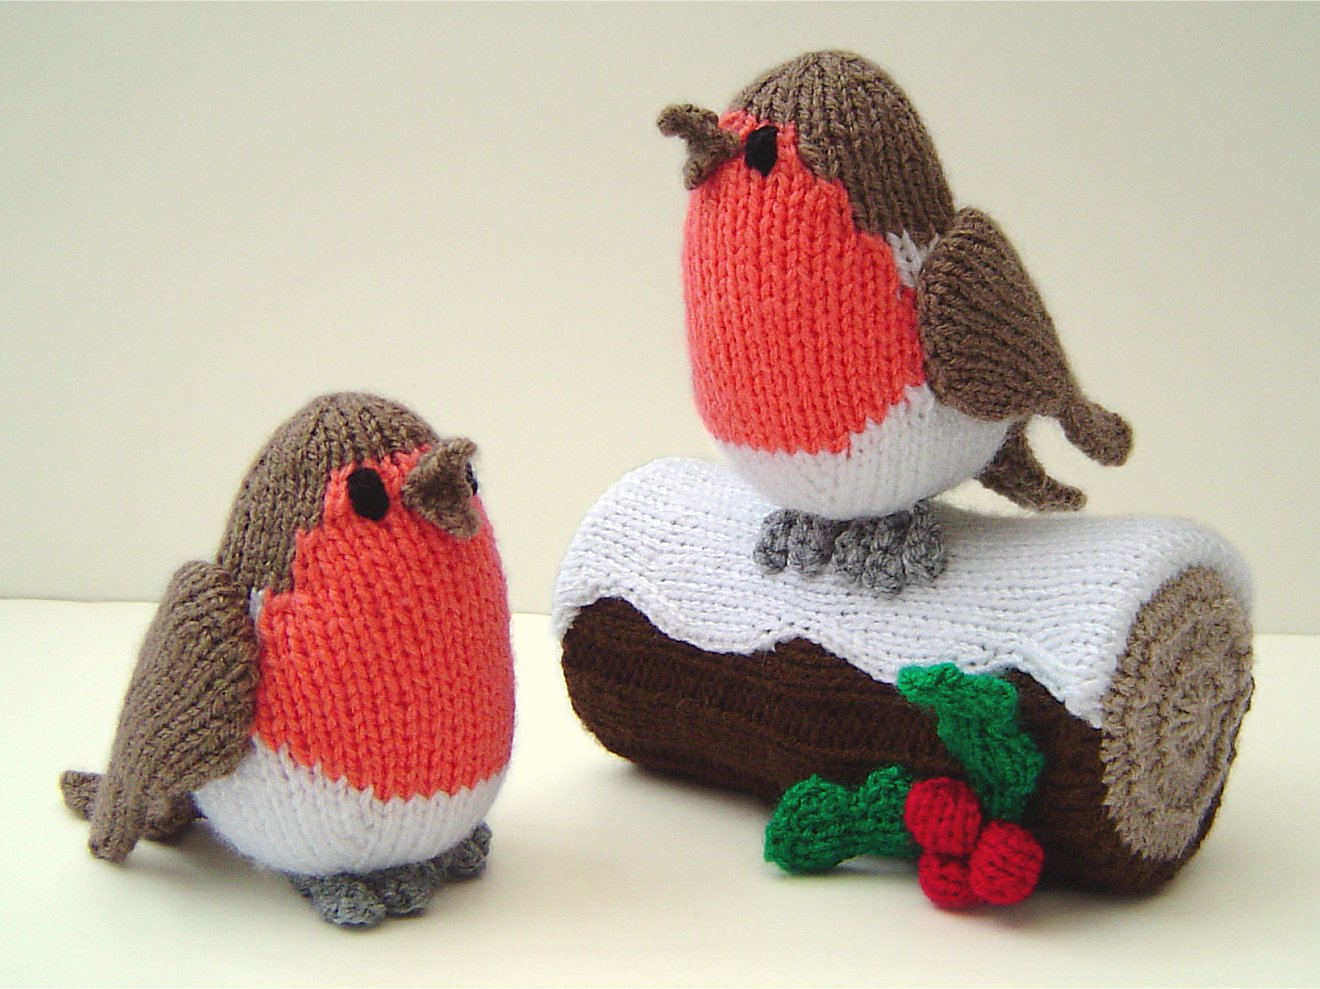 How to make a christmas yule log decoration - Knitted Robins And Yule Log